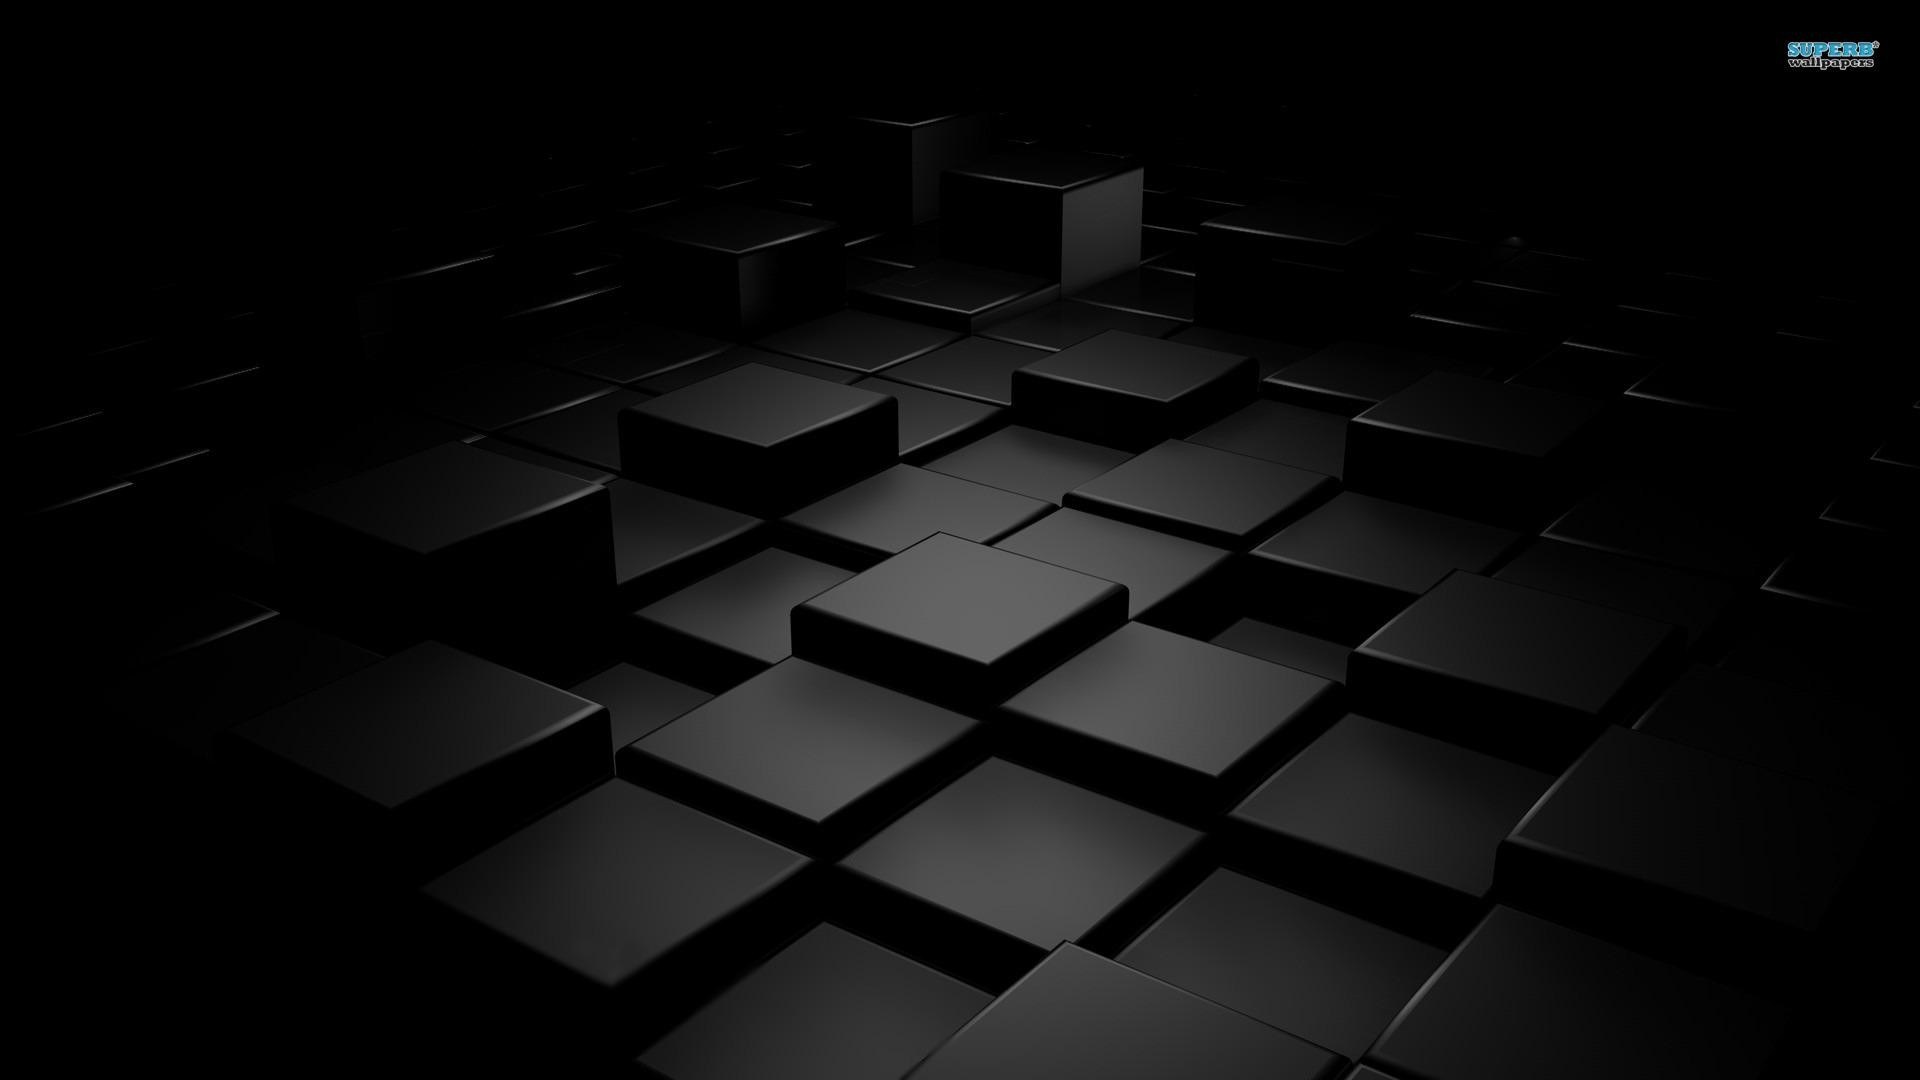 6. black-and-gold-wallpaper6-1-600×338